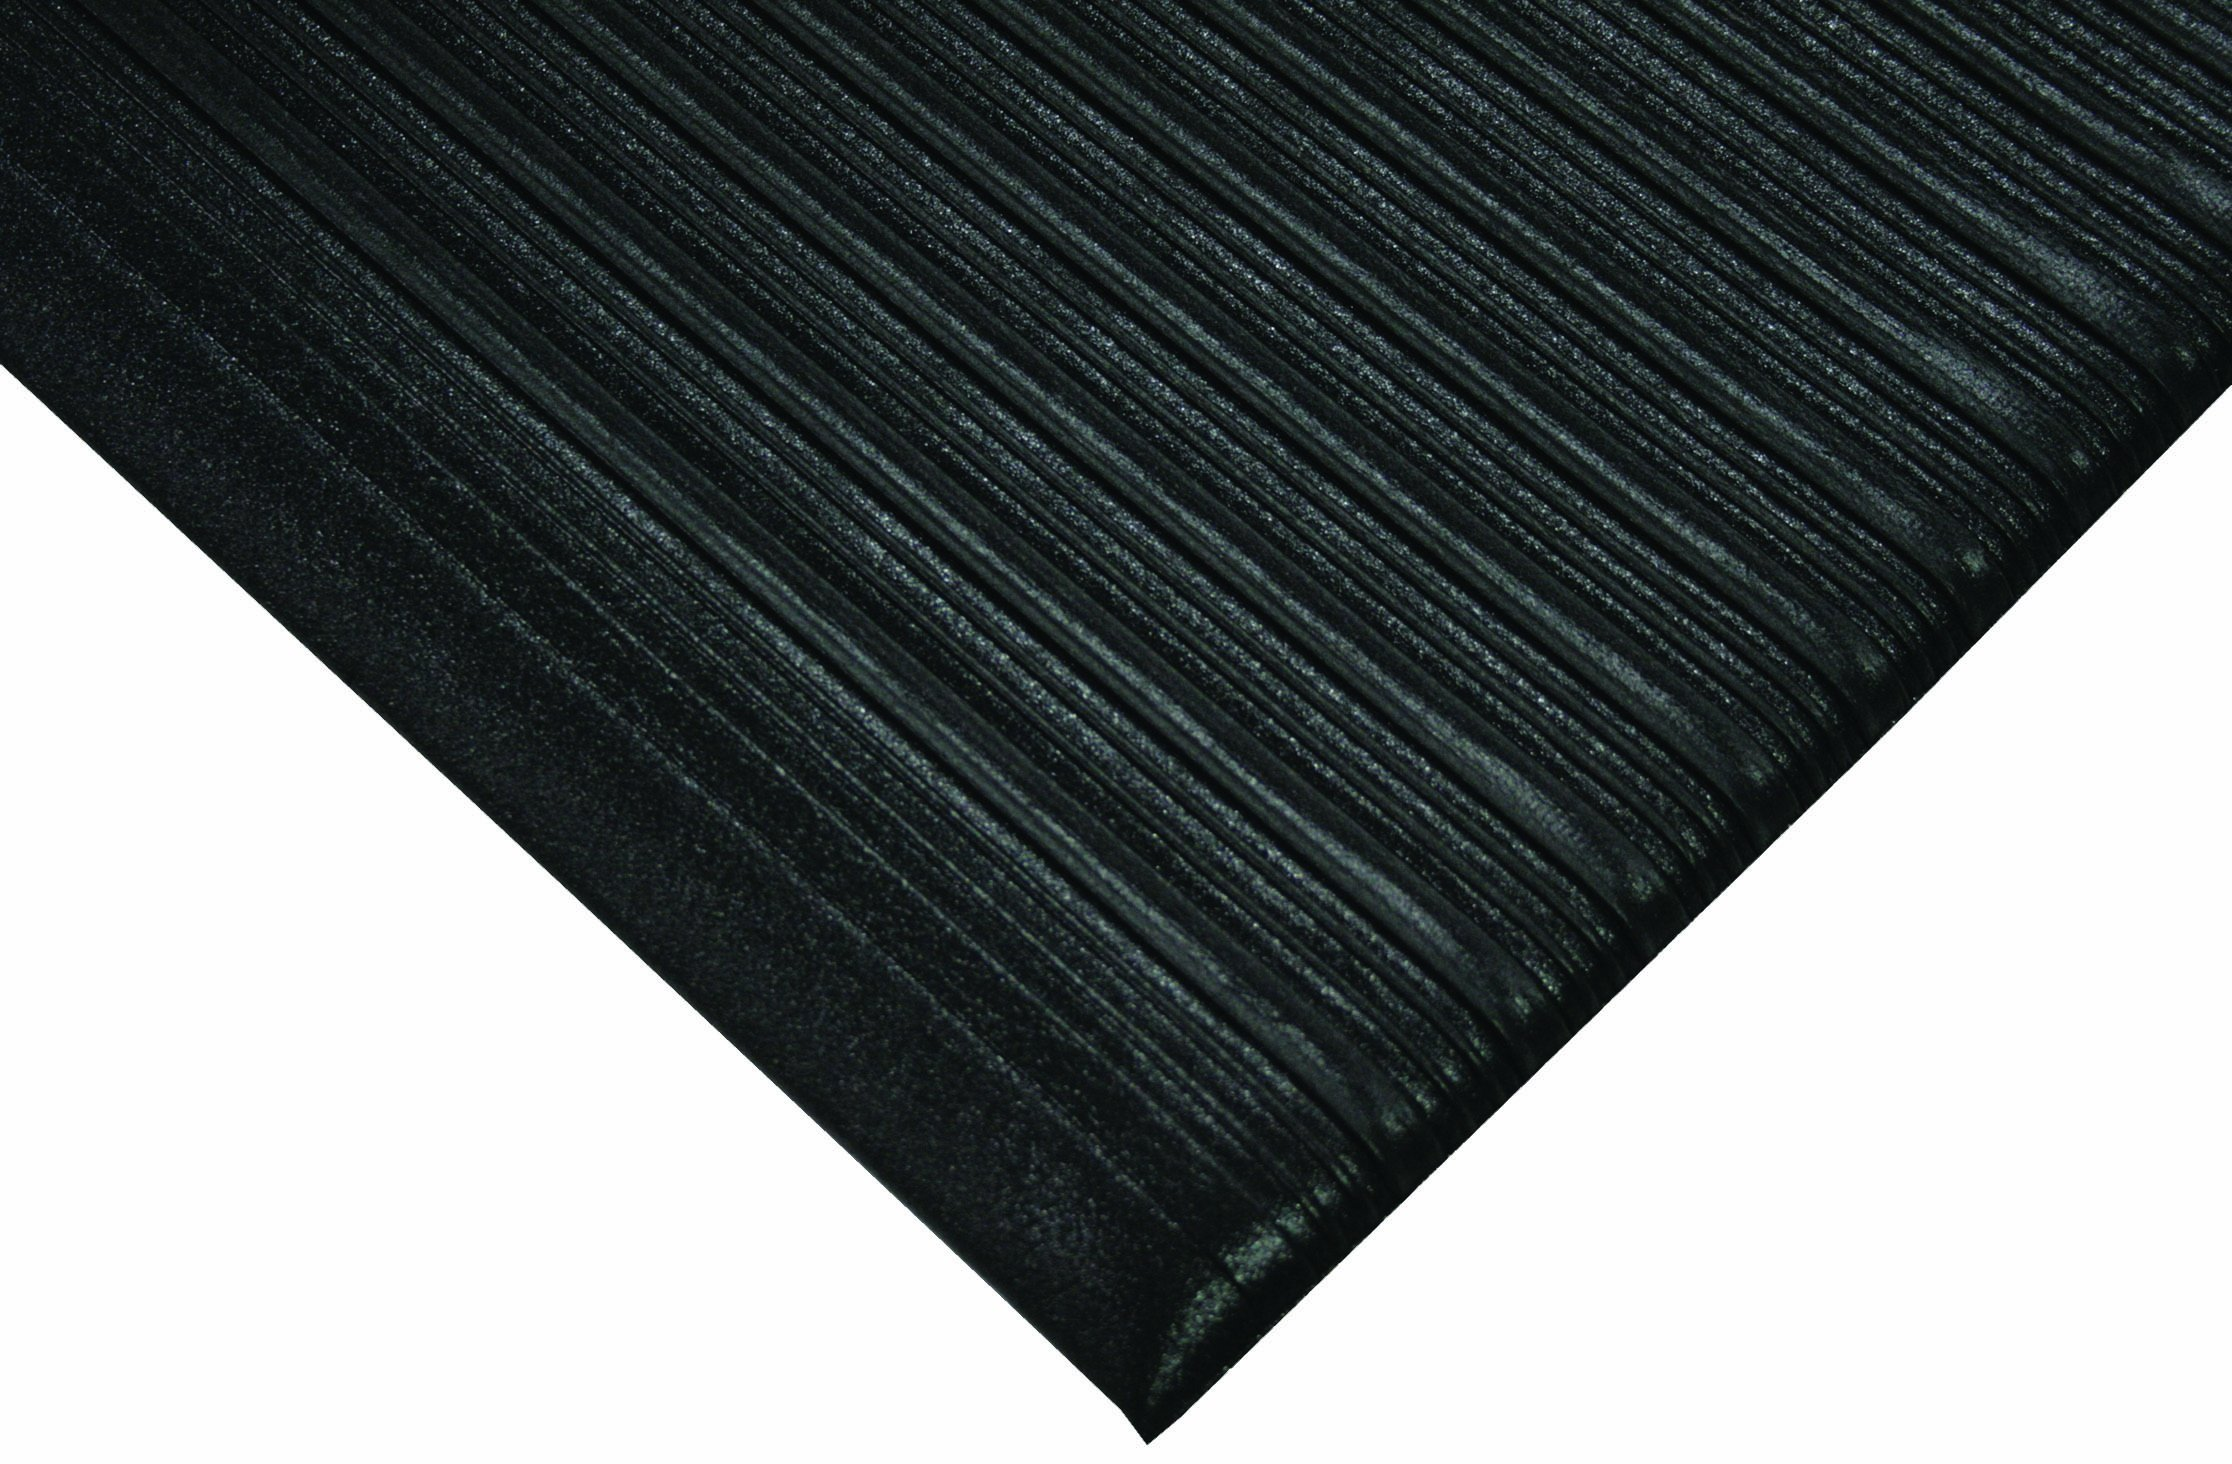 Wearwell PVC 451 Tuf Sponge Light Duty Anti-Fatigue Mat, for Dry Areas, 2' Width x 60' Length x 3/8'' Thickness, Black